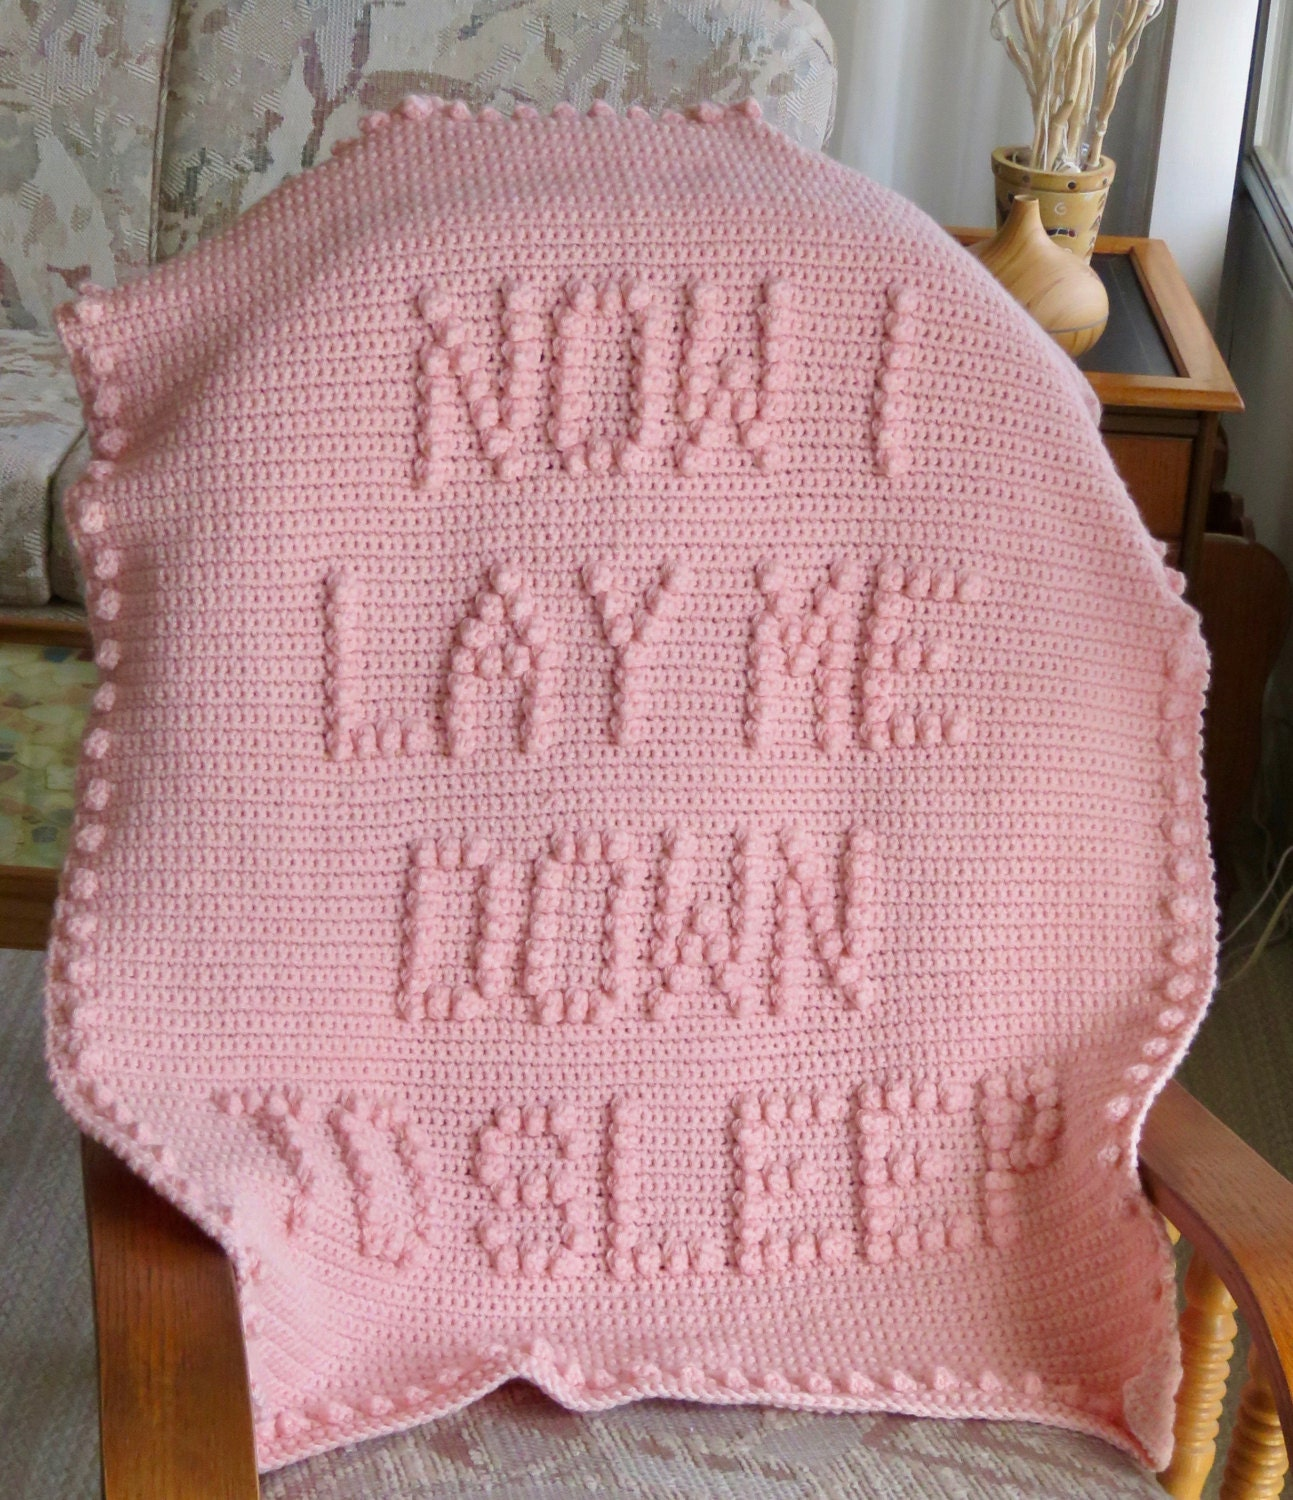 Now i lay me down to sleep wall decal - Now I Lay Me Down To Sleep Crochet Baby Blanket Pattern Baby Blanket Pattern Blanket Pattern